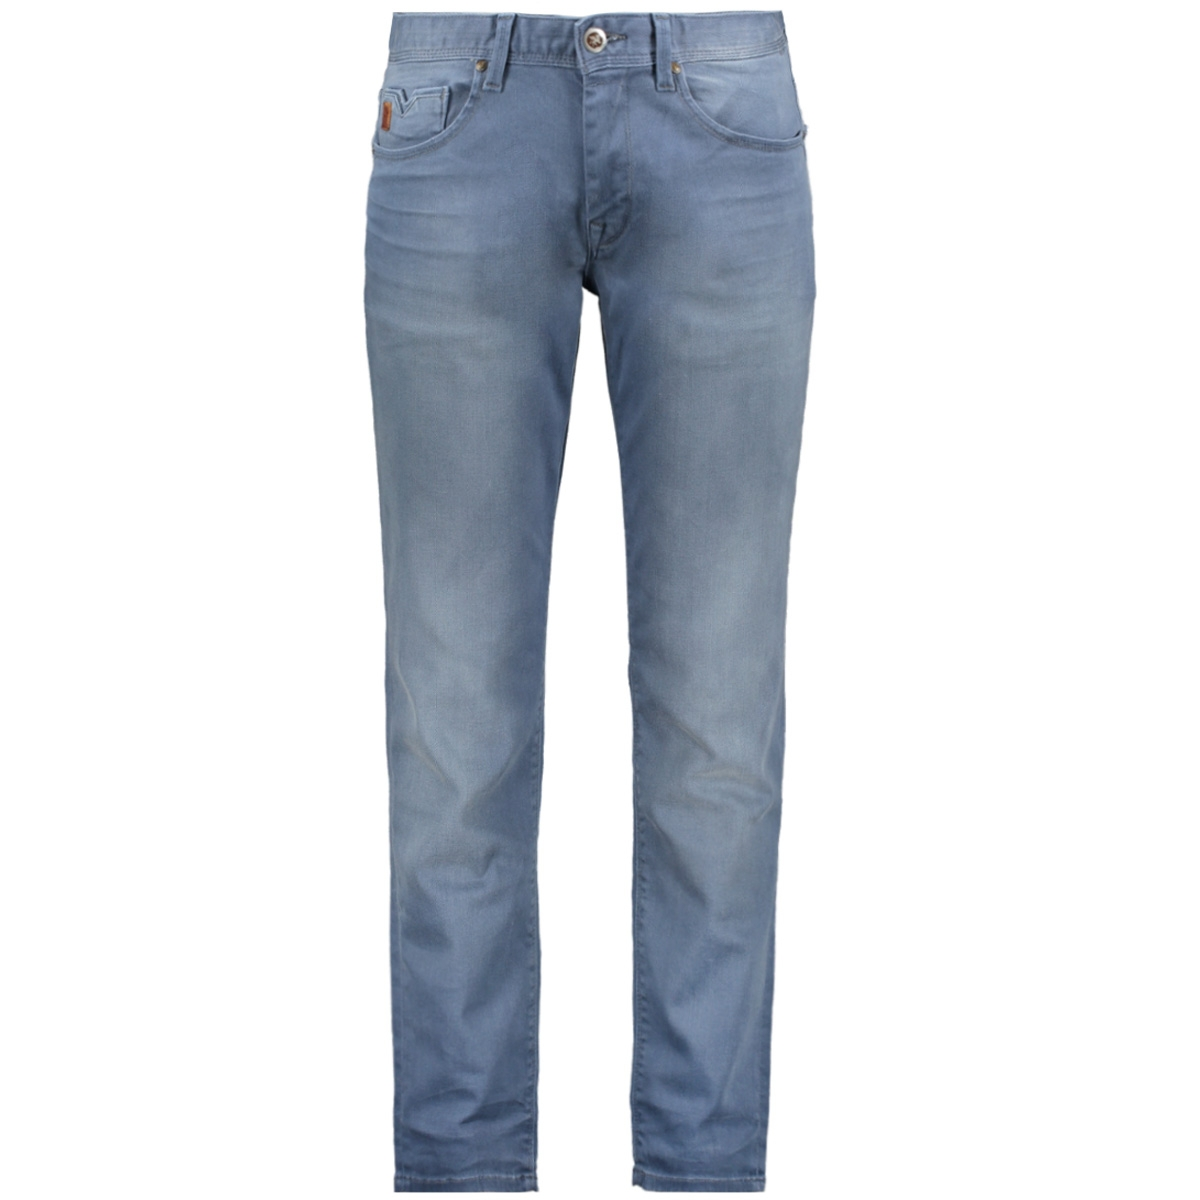 v7 rider vtr515 vanguard jeans steel blue grey